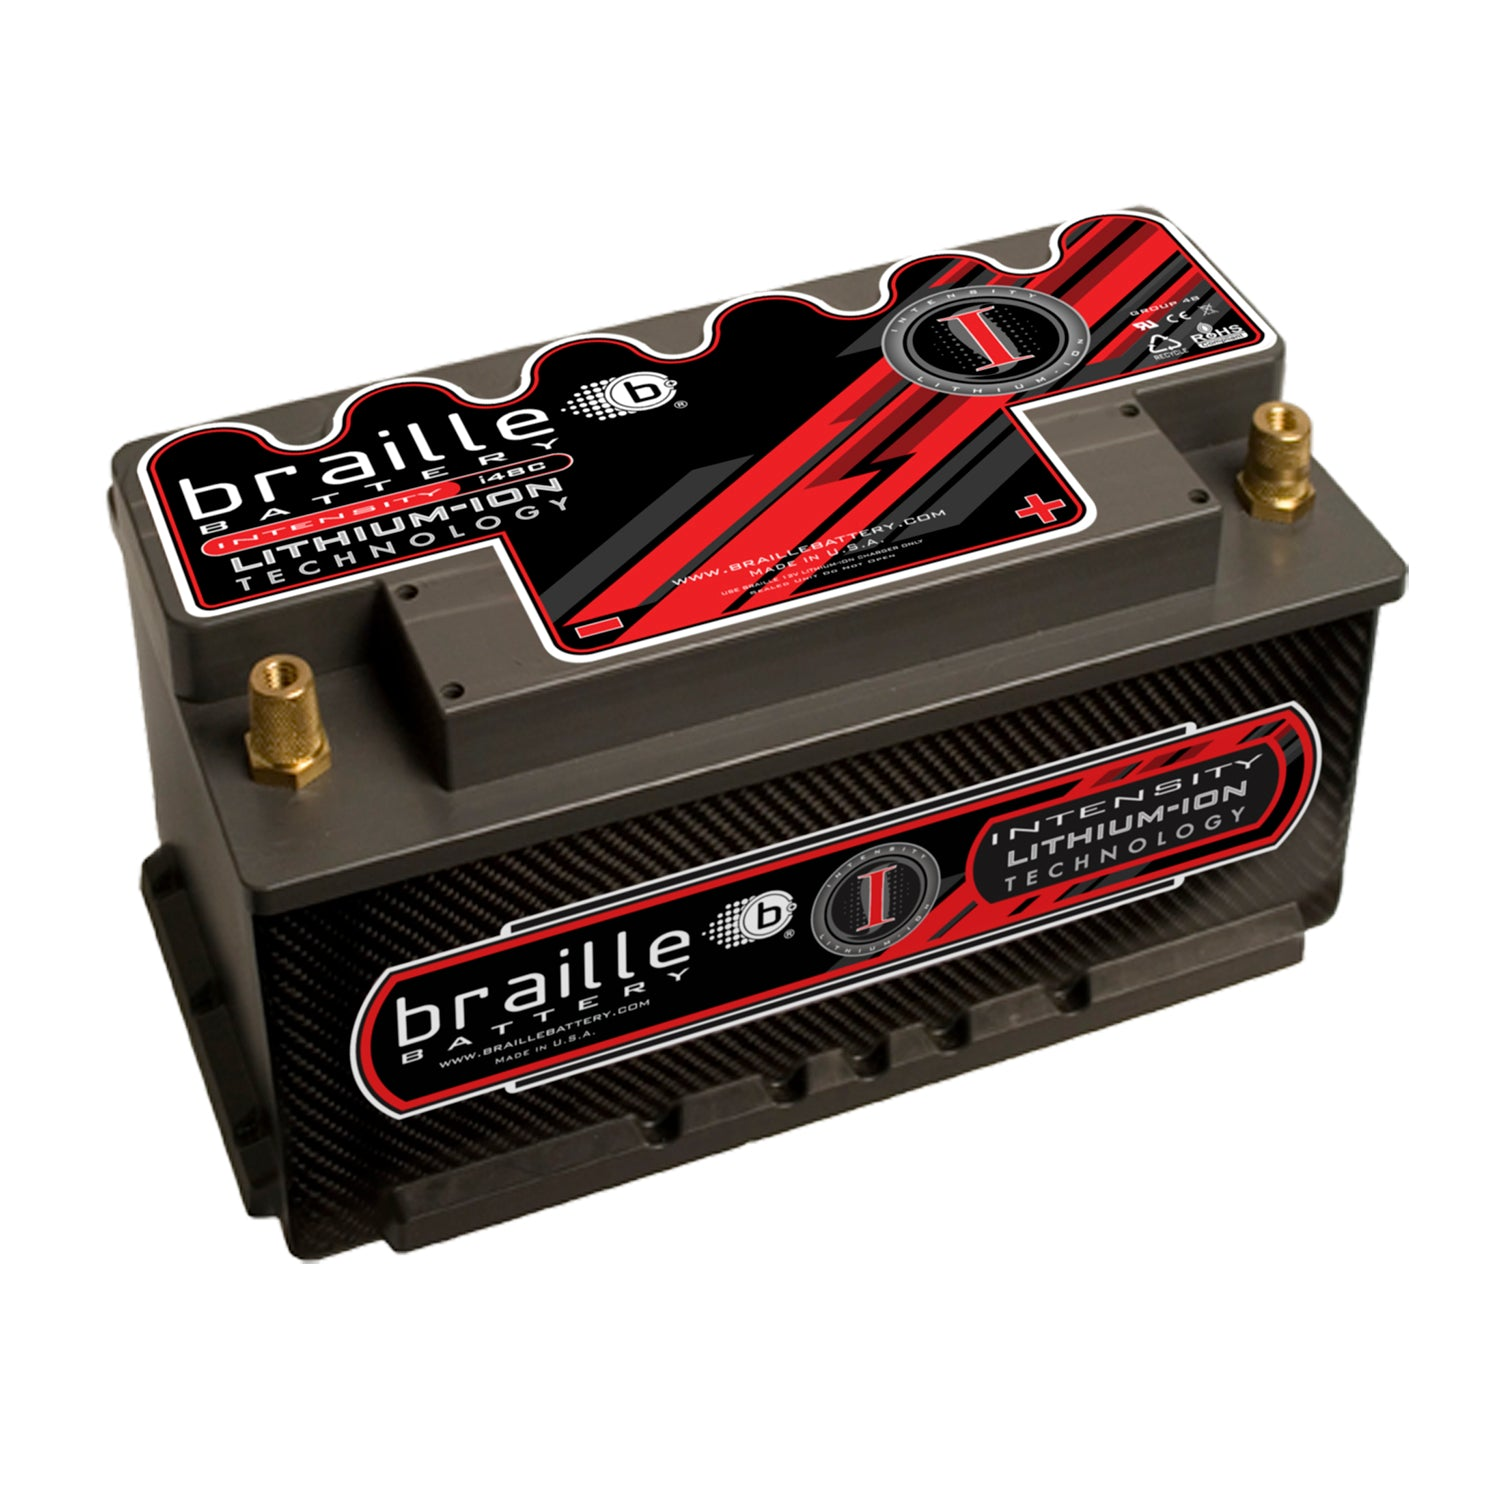 i48CE - Intensity Carbon Group 48 (low profile) lithium battery